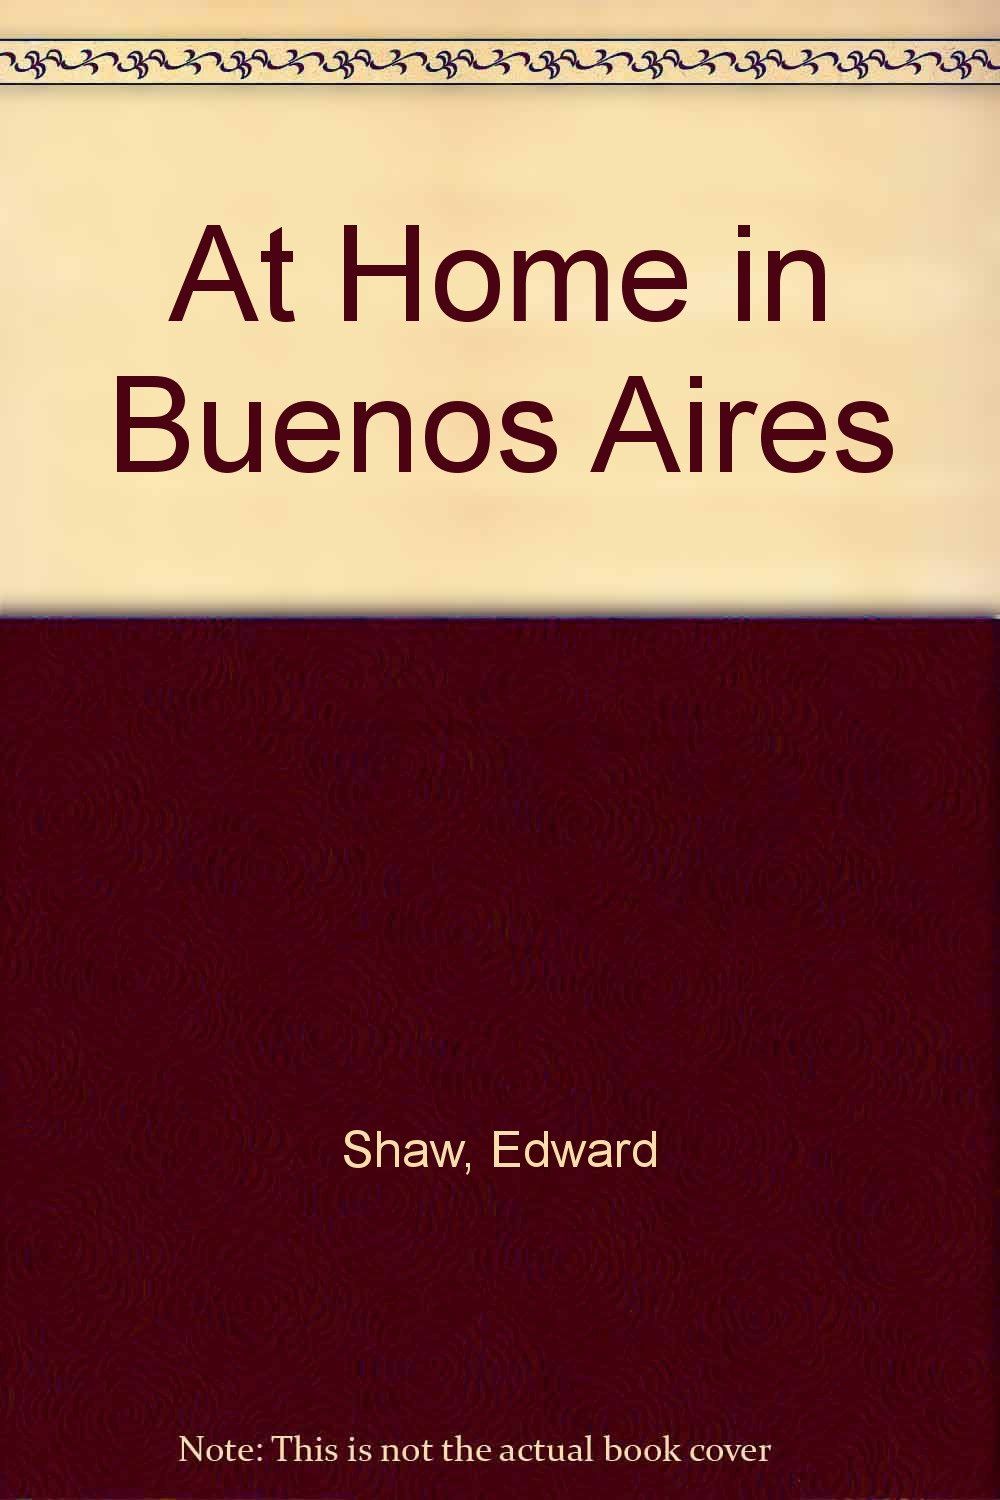 At Home in Buenos Aires (Spanish Edition): Edward Shaw ...